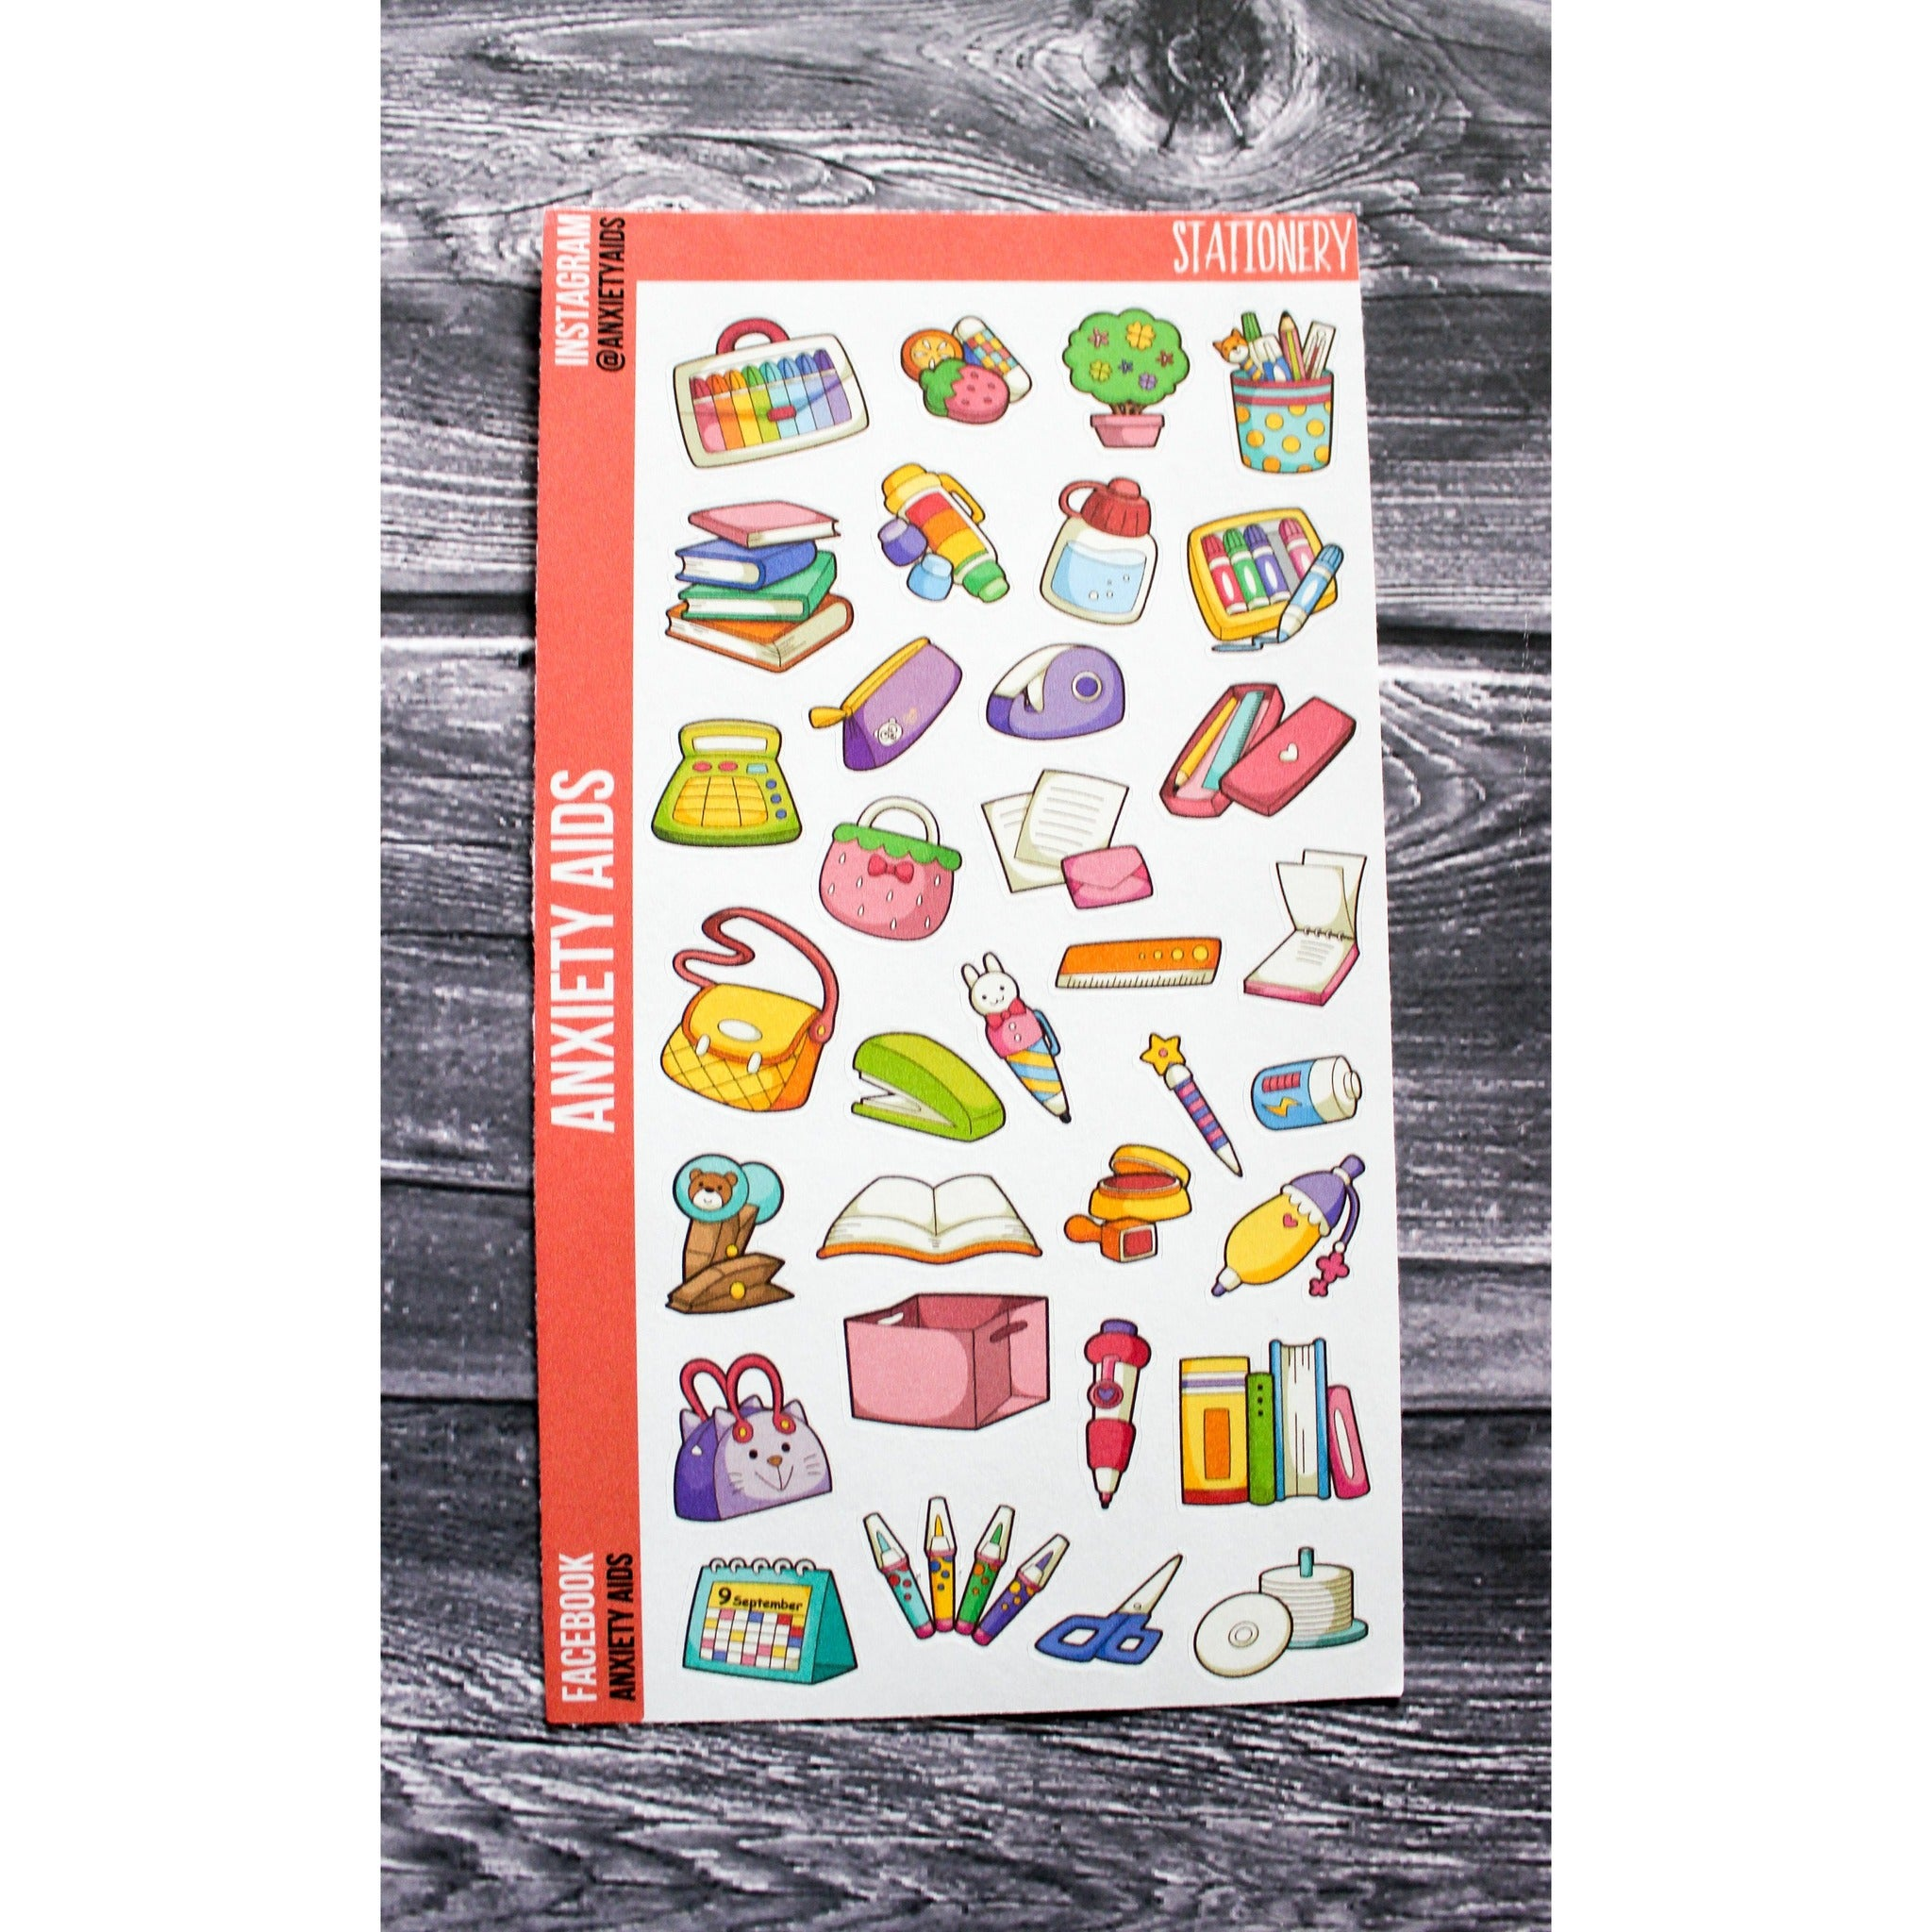 Cute Colorful Stationery Planner Stickers